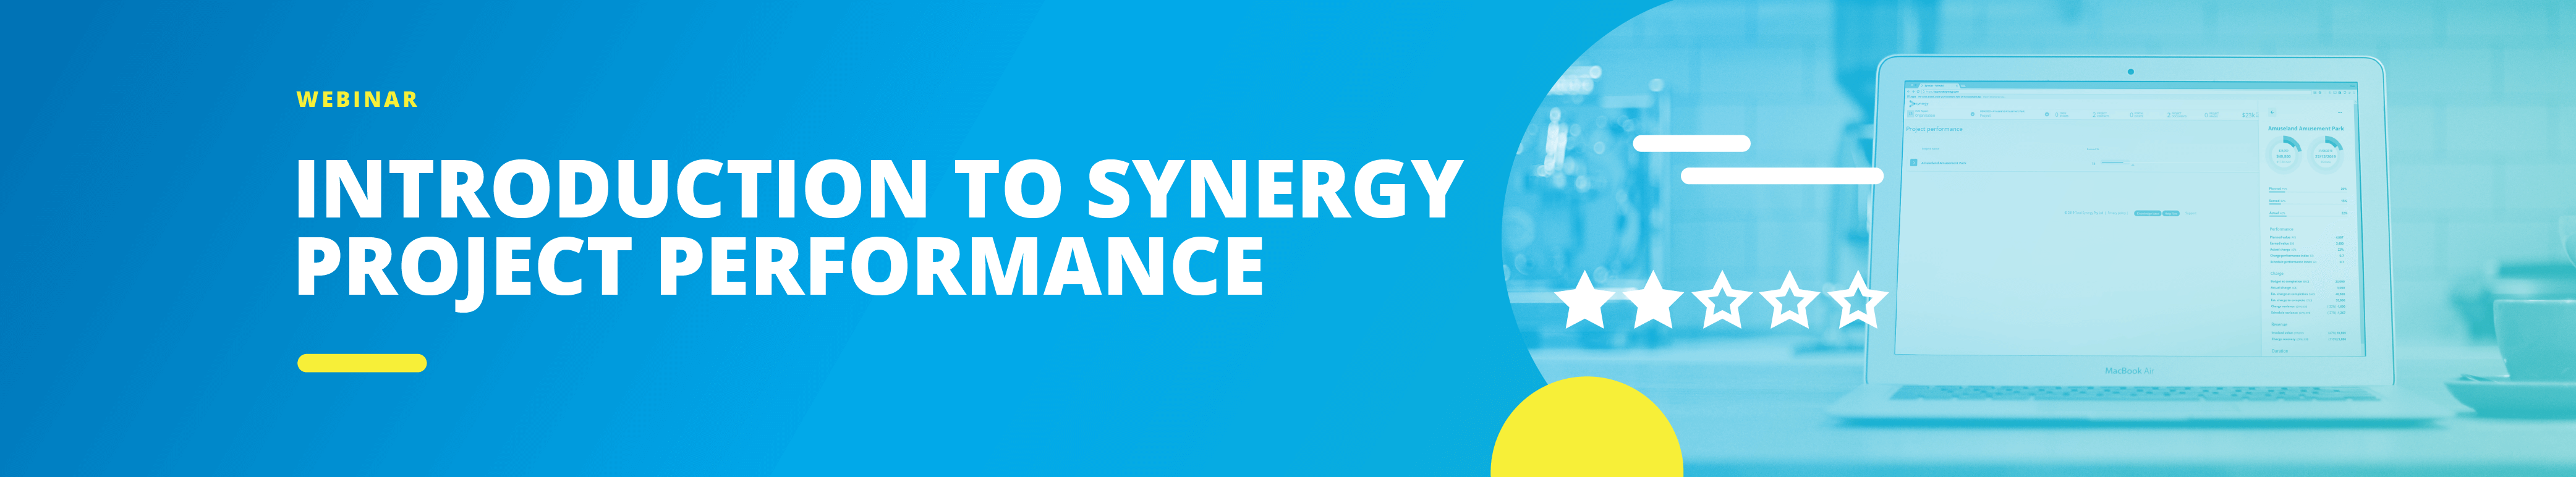 Introduction to Synergy project performance